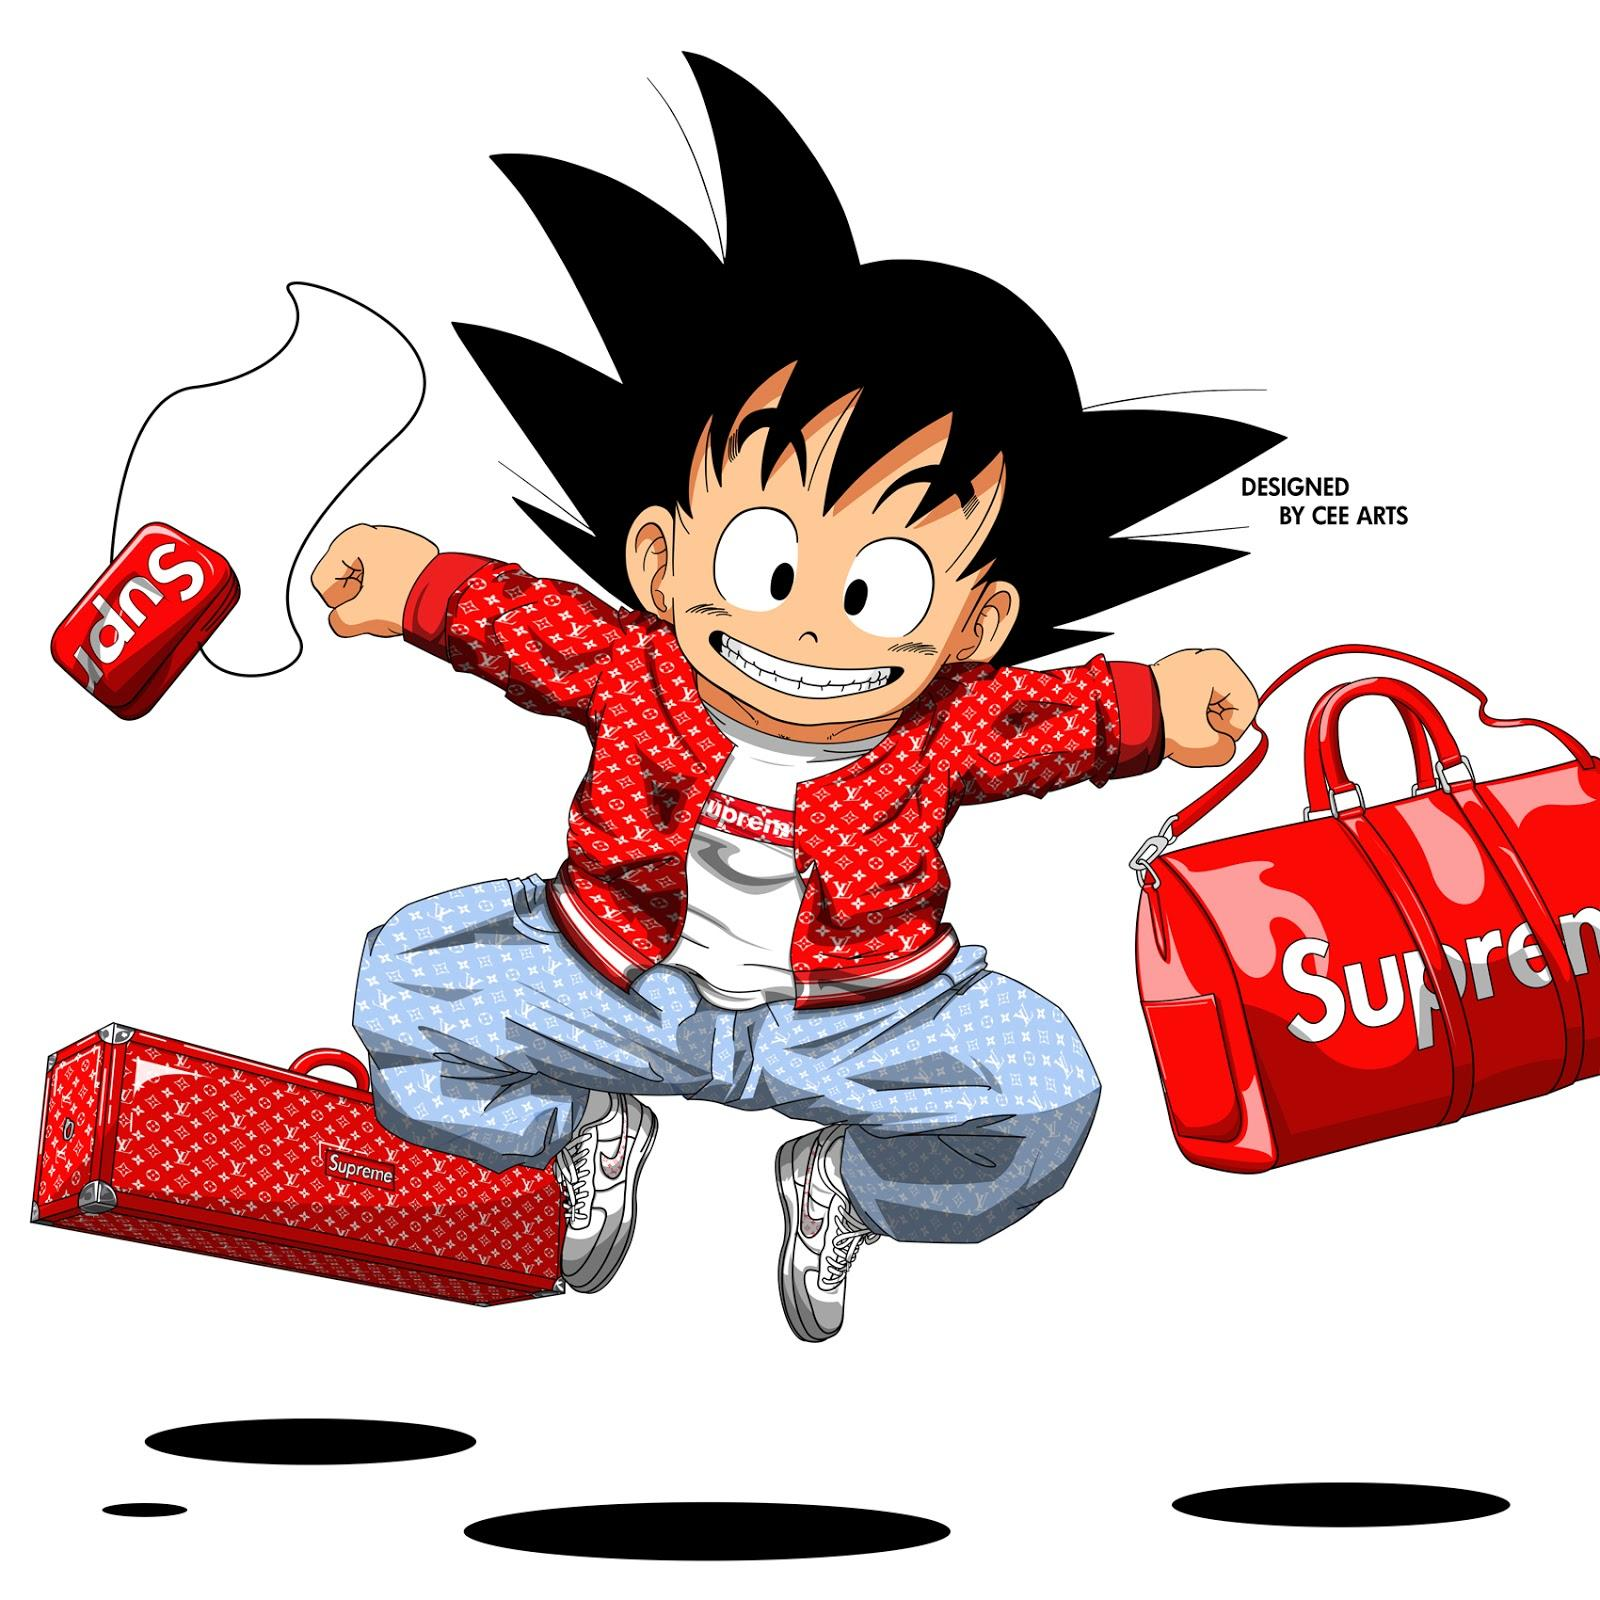 Supreme Wallpaper Cartoon Hypebeast Supreme Wallpaper